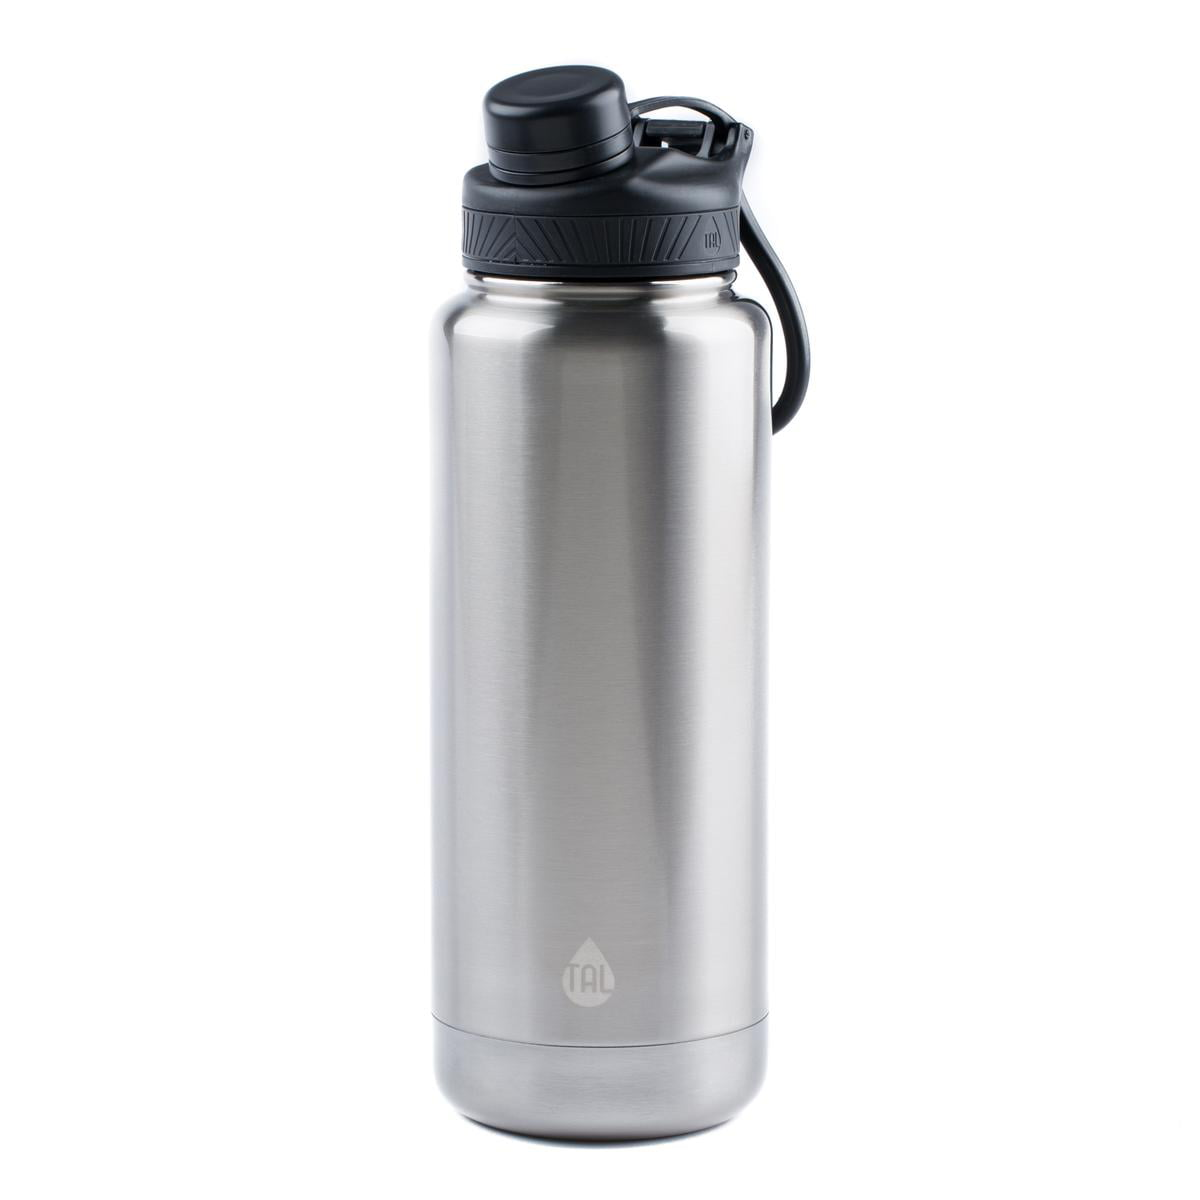 TAL Navy 40oz Double Wall Vacuum Insulated Stainless Steel Ranger Pro Water Bottle by Core Home